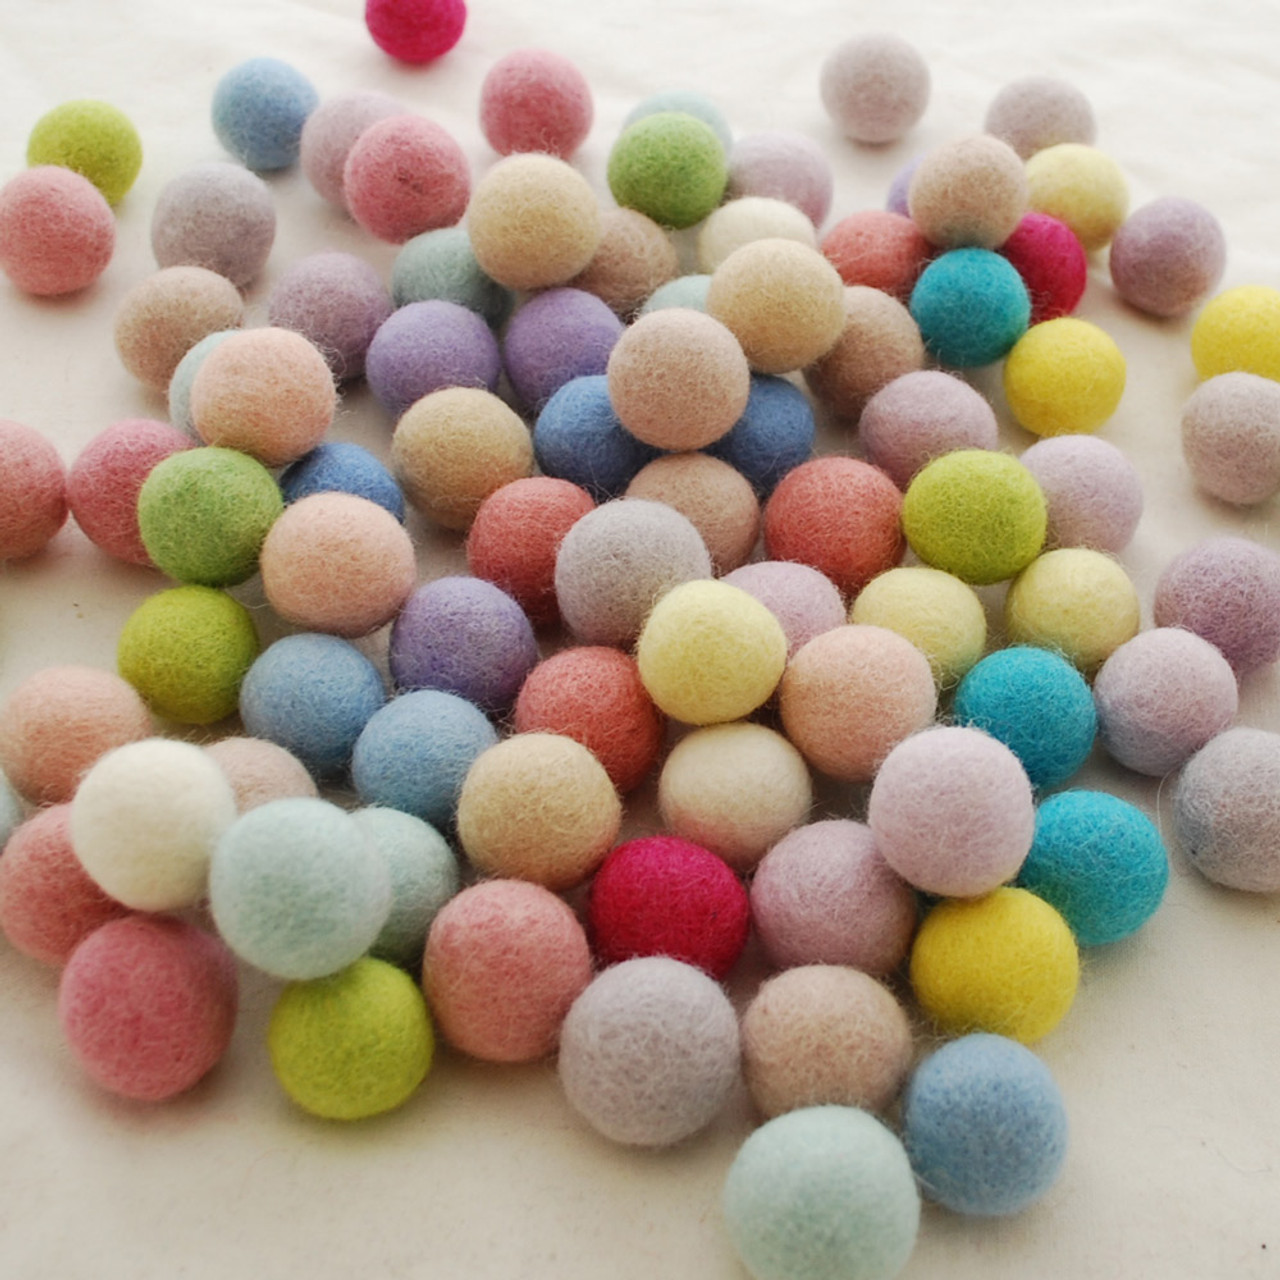 25 Assorted Light 100/% Wool Felt Balls Pale and Pastel Felt Balls 2.5cm